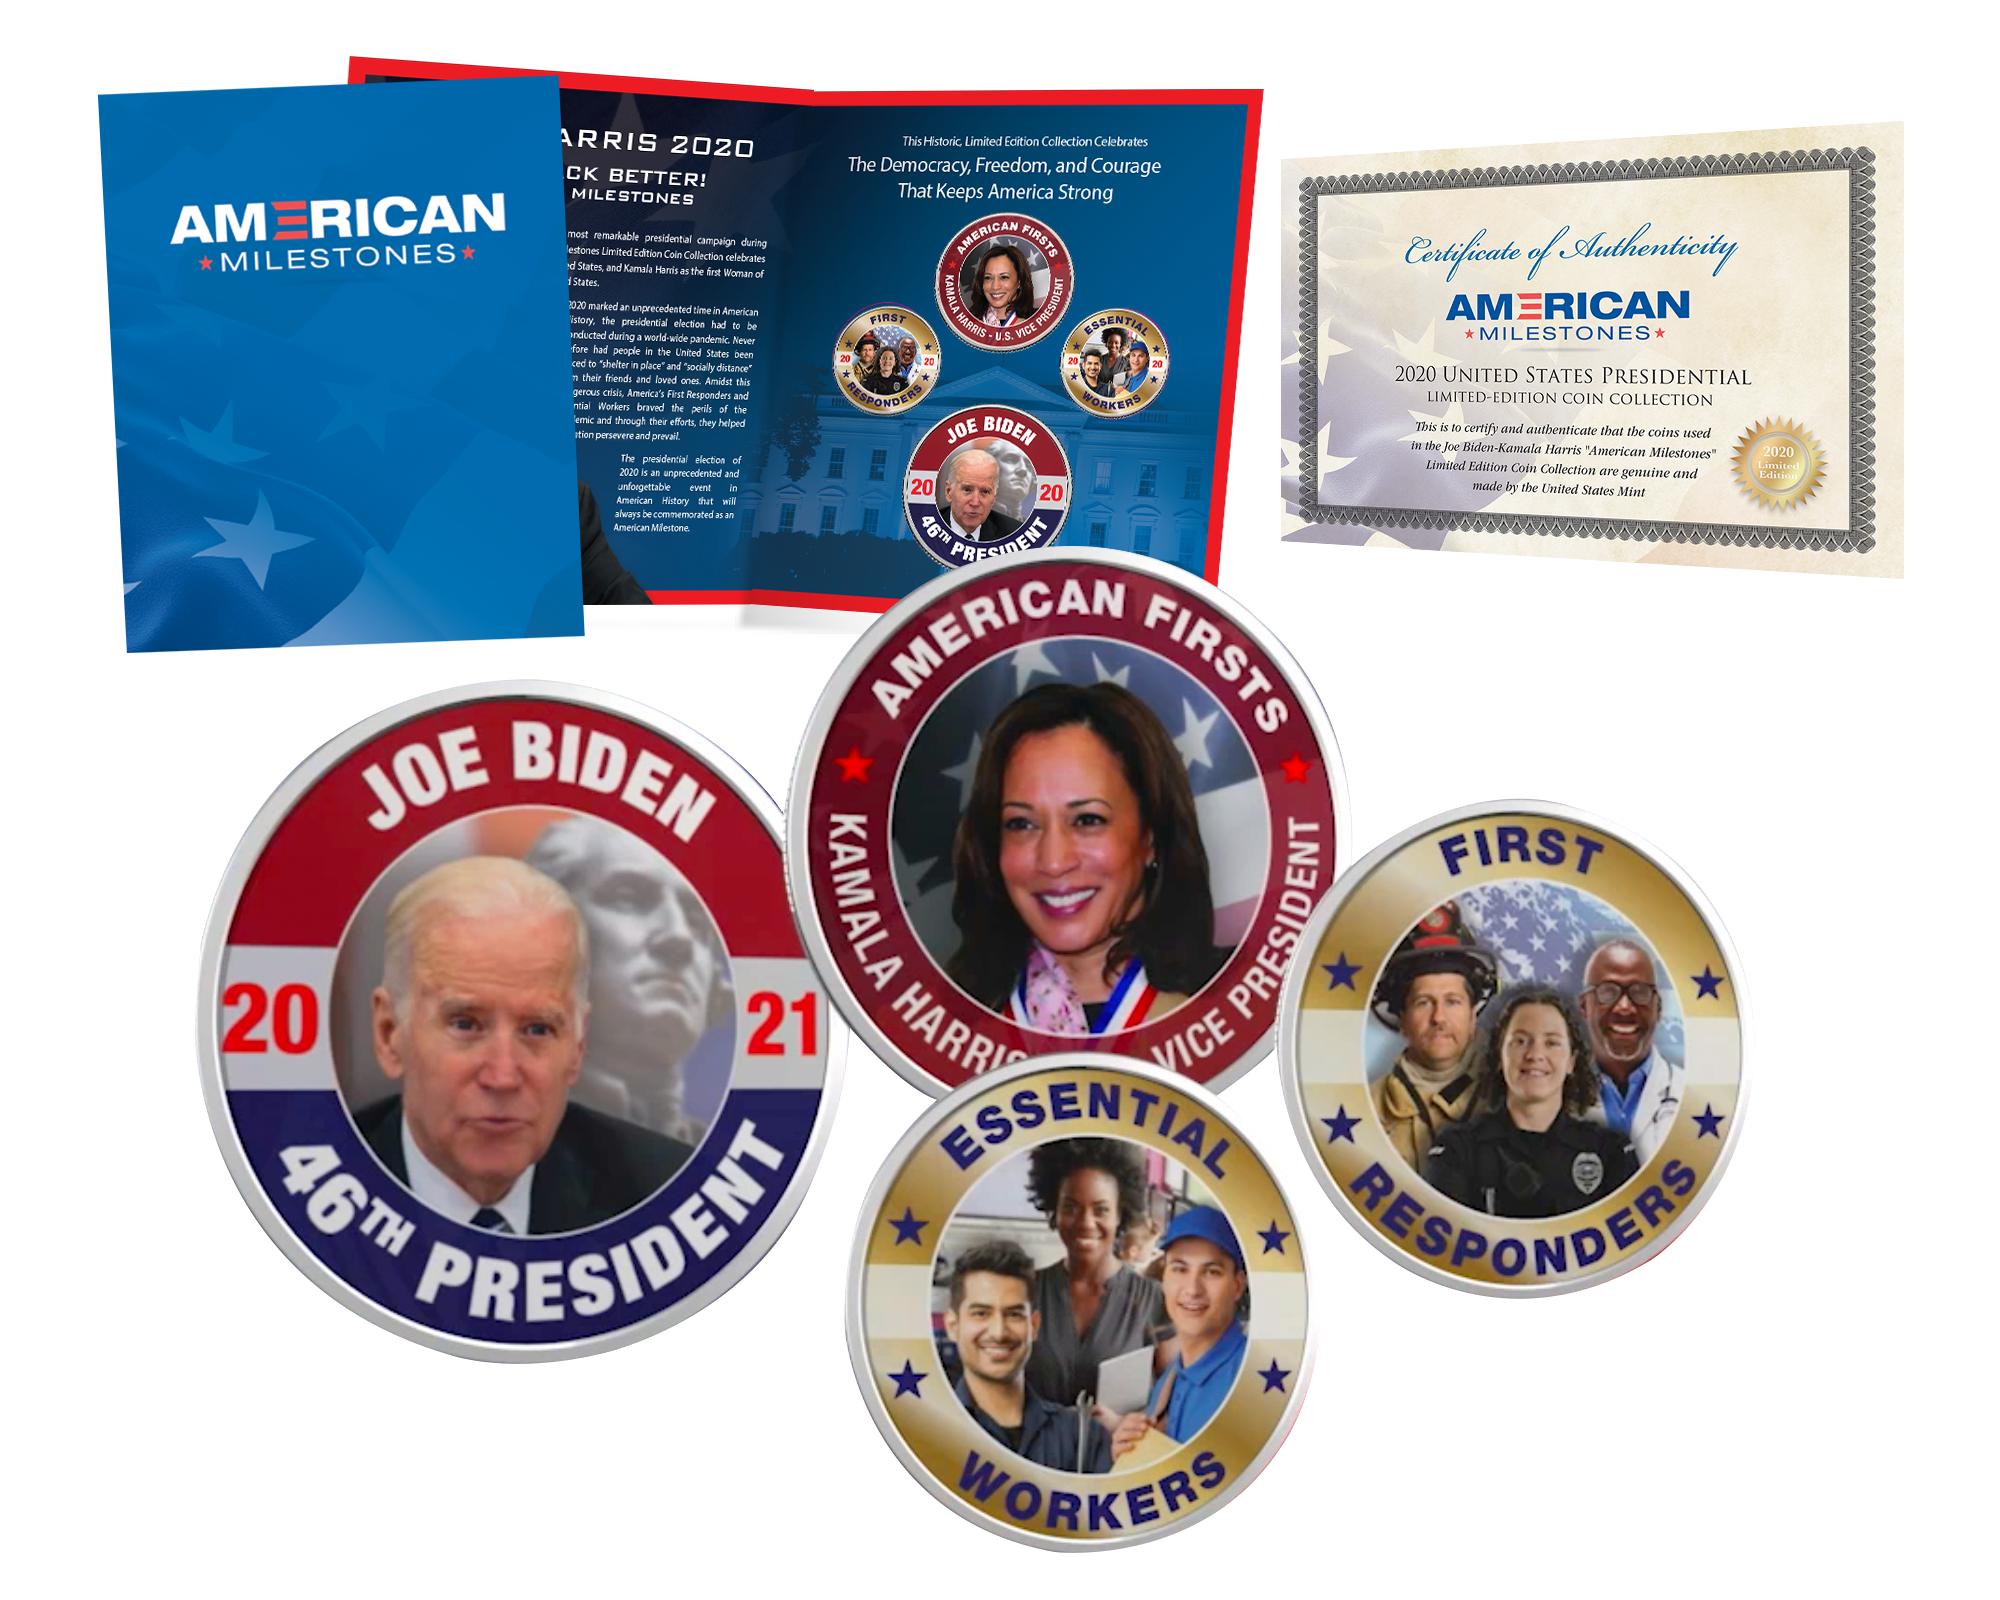 4-Pc Biden Harris Essential Workers First Responders Coins with Certificate of Authenticity